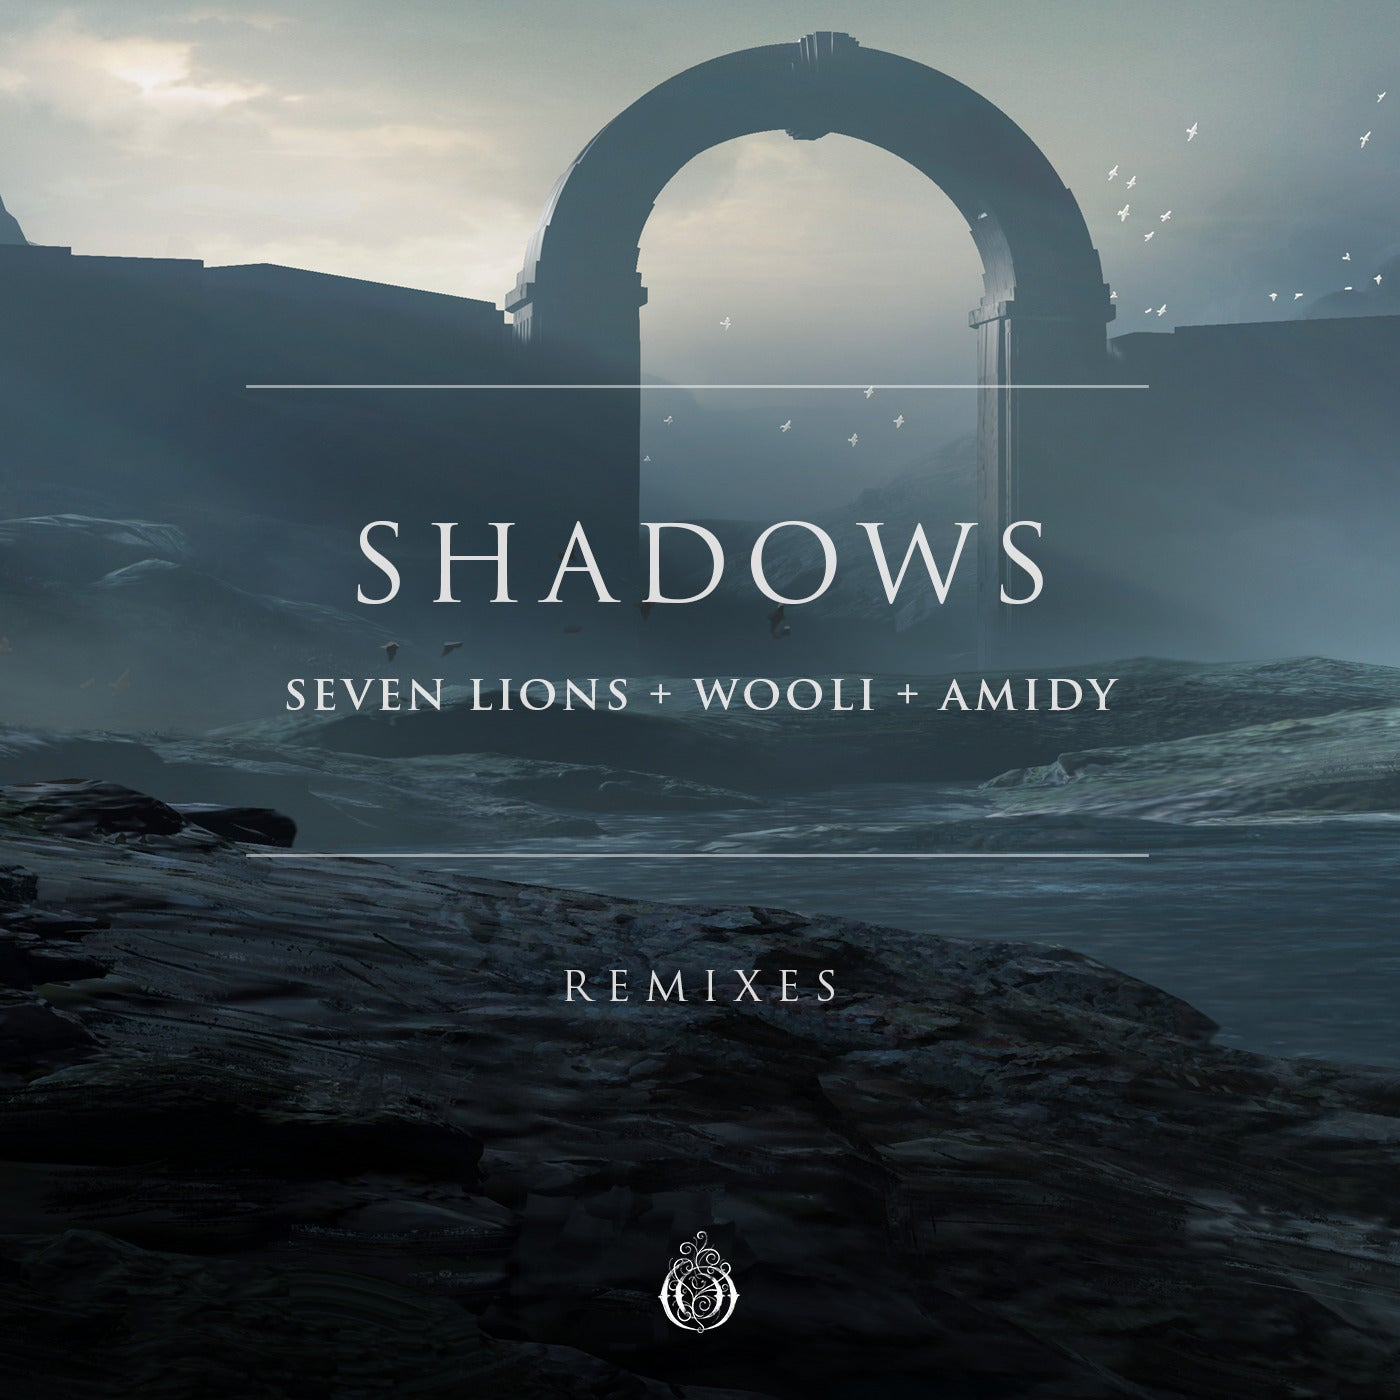 Shadows (Maor Levi Extended Mix)